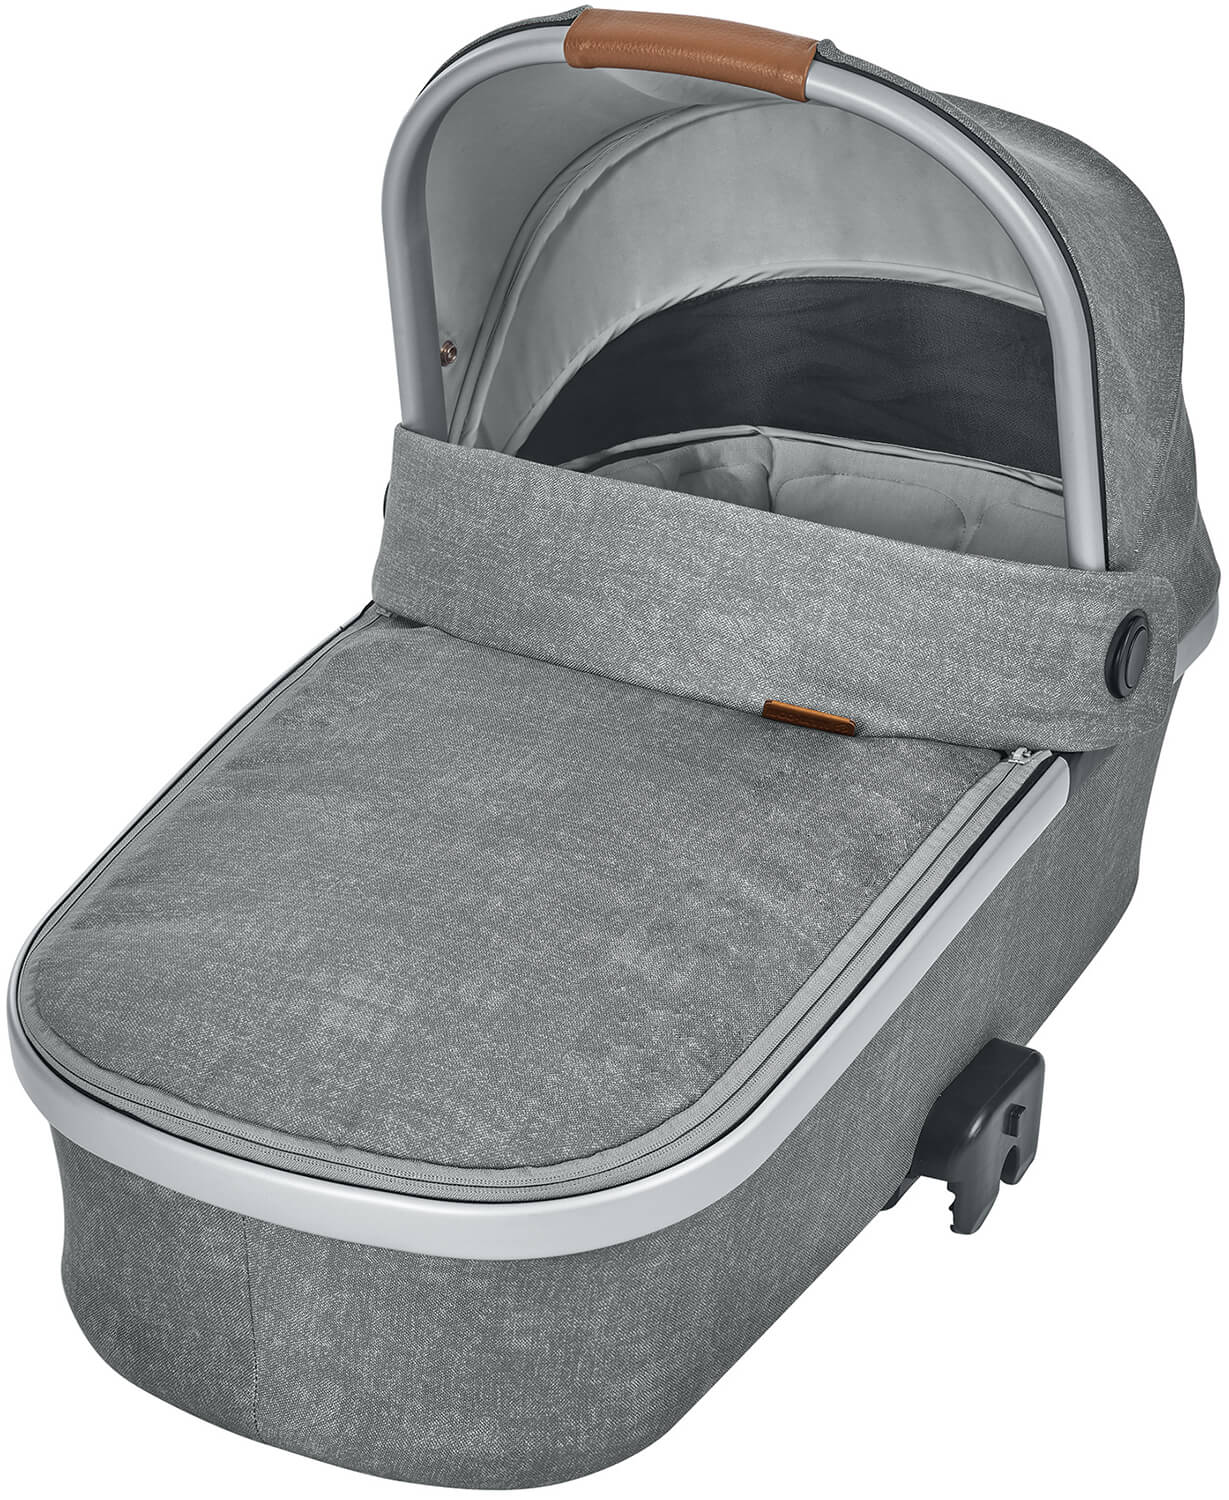 maxi cosi oria kinderwagenaufsatz nomad grey 2018. Black Bedroom Furniture Sets. Home Design Ideas